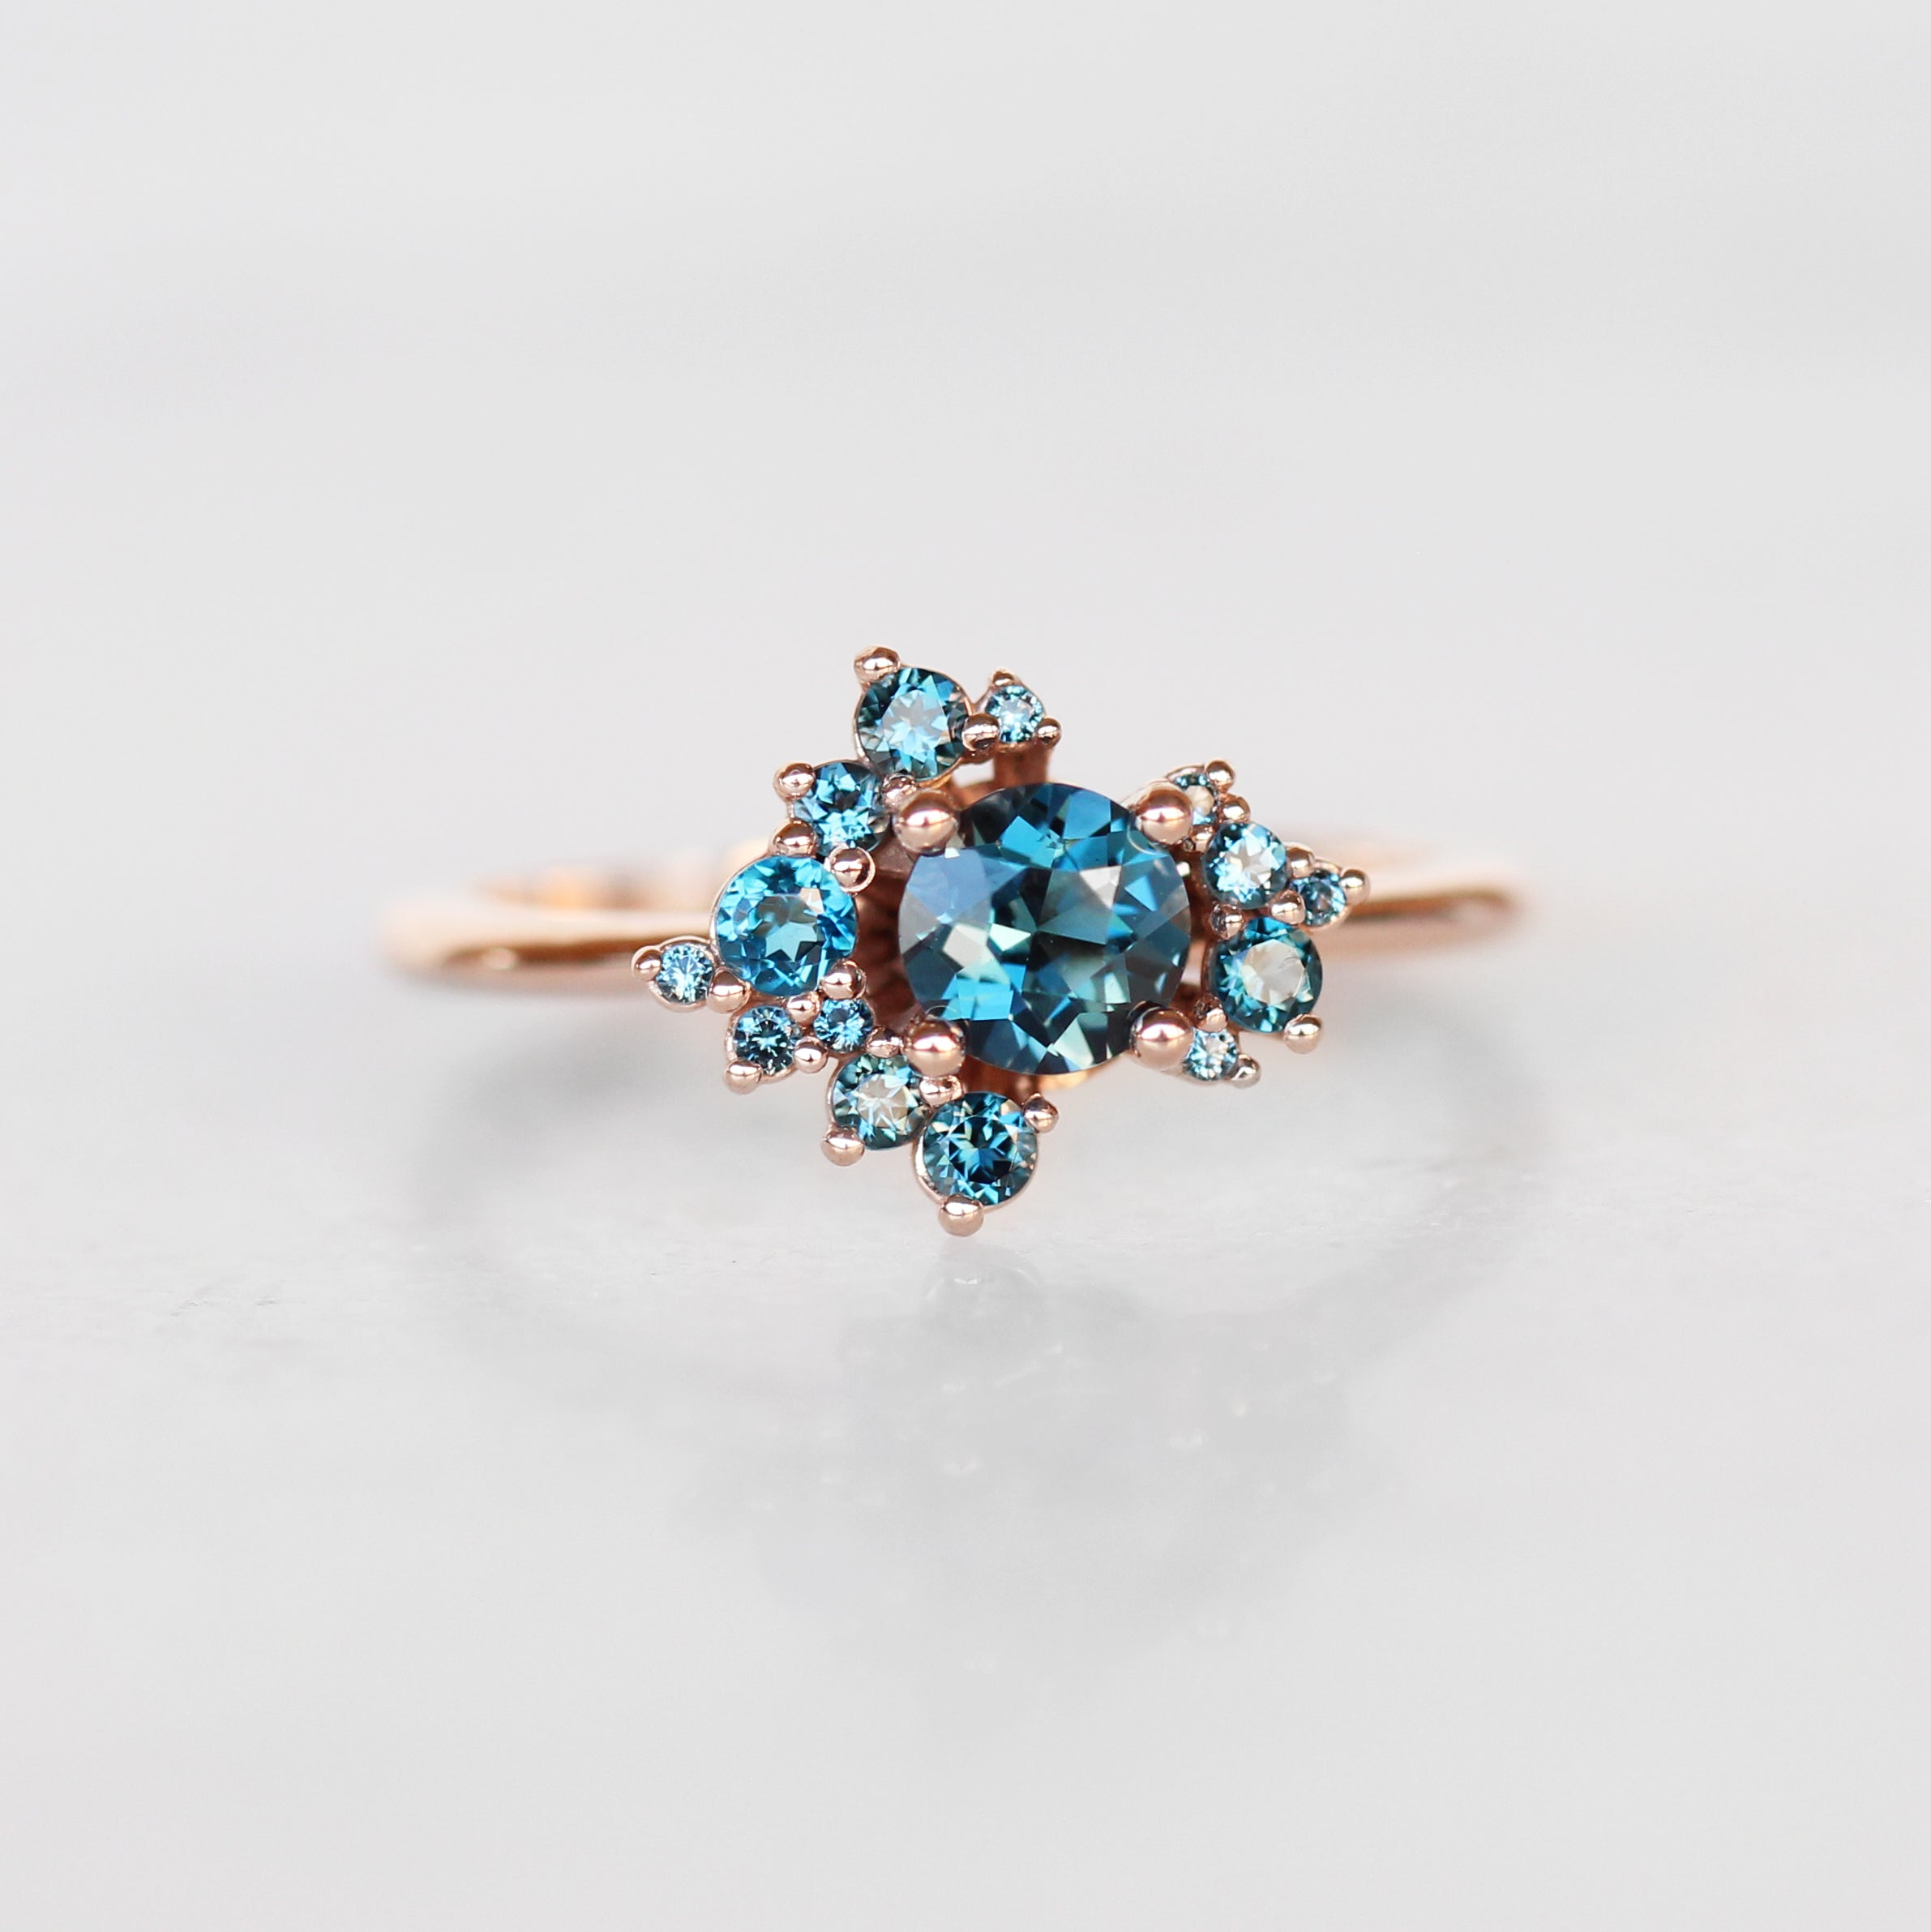 Orion Ring with all London Blue Topaz - Cluster ring - Celestial Diamonds ® by Midwinter Co.